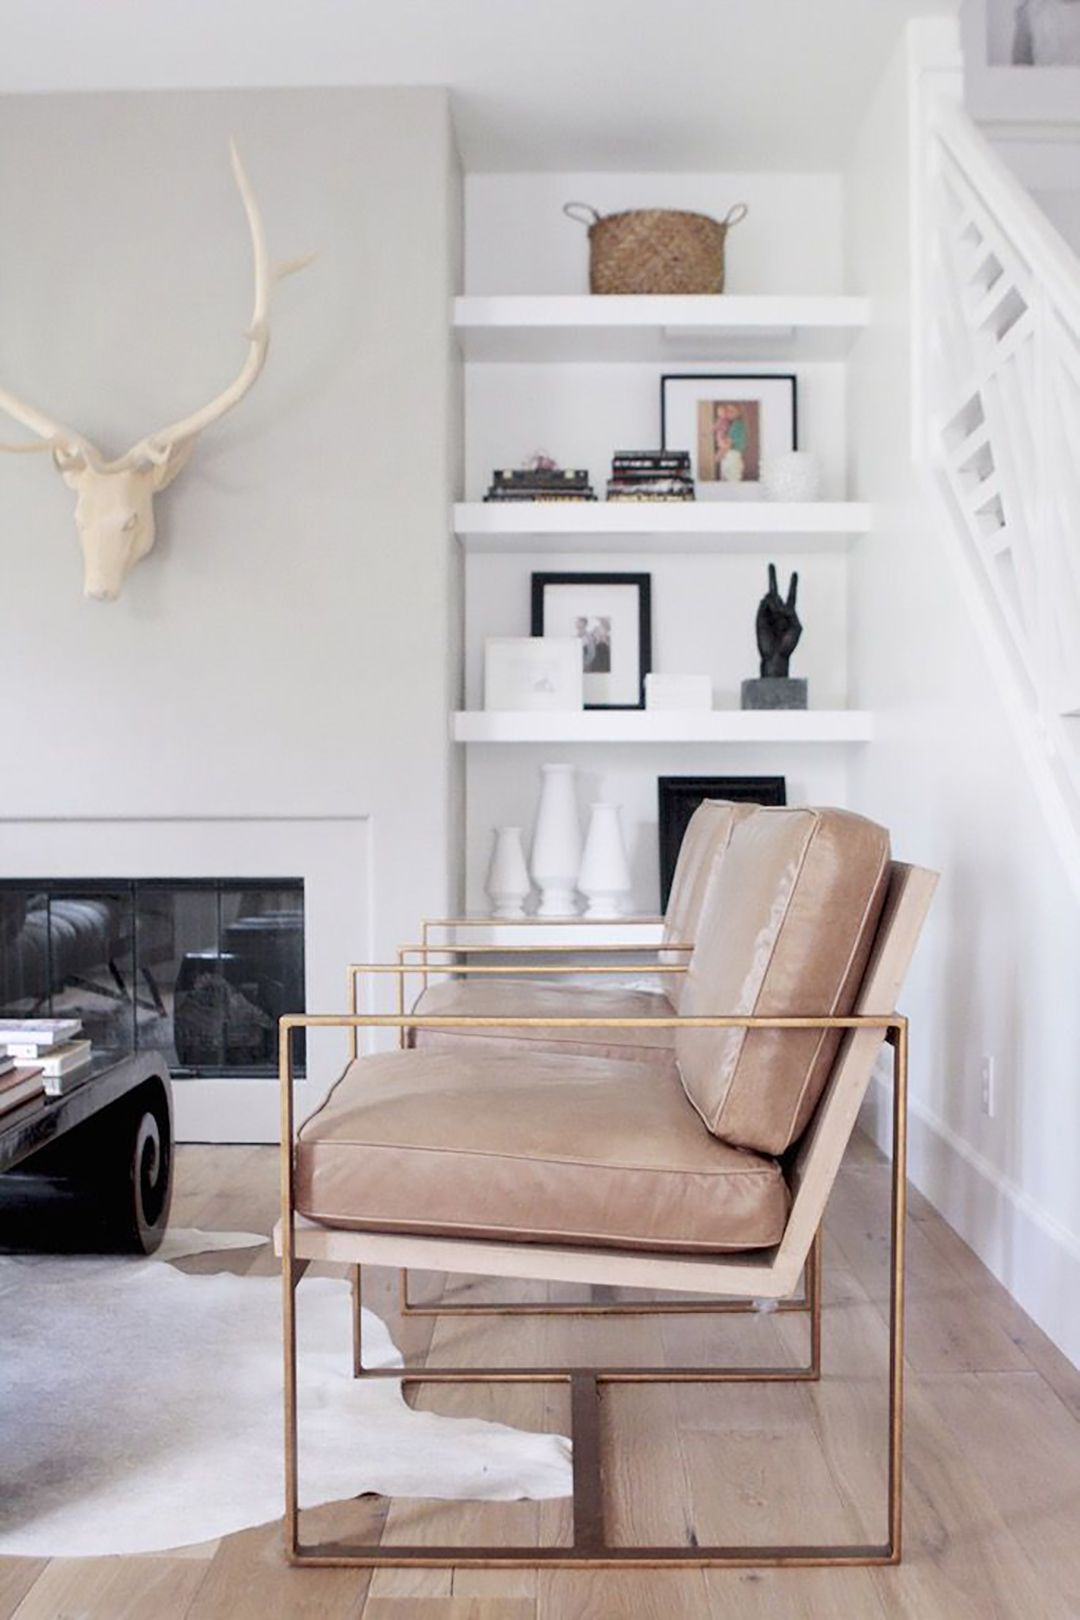 NEW CASA | Interiors, Living rooms and Room